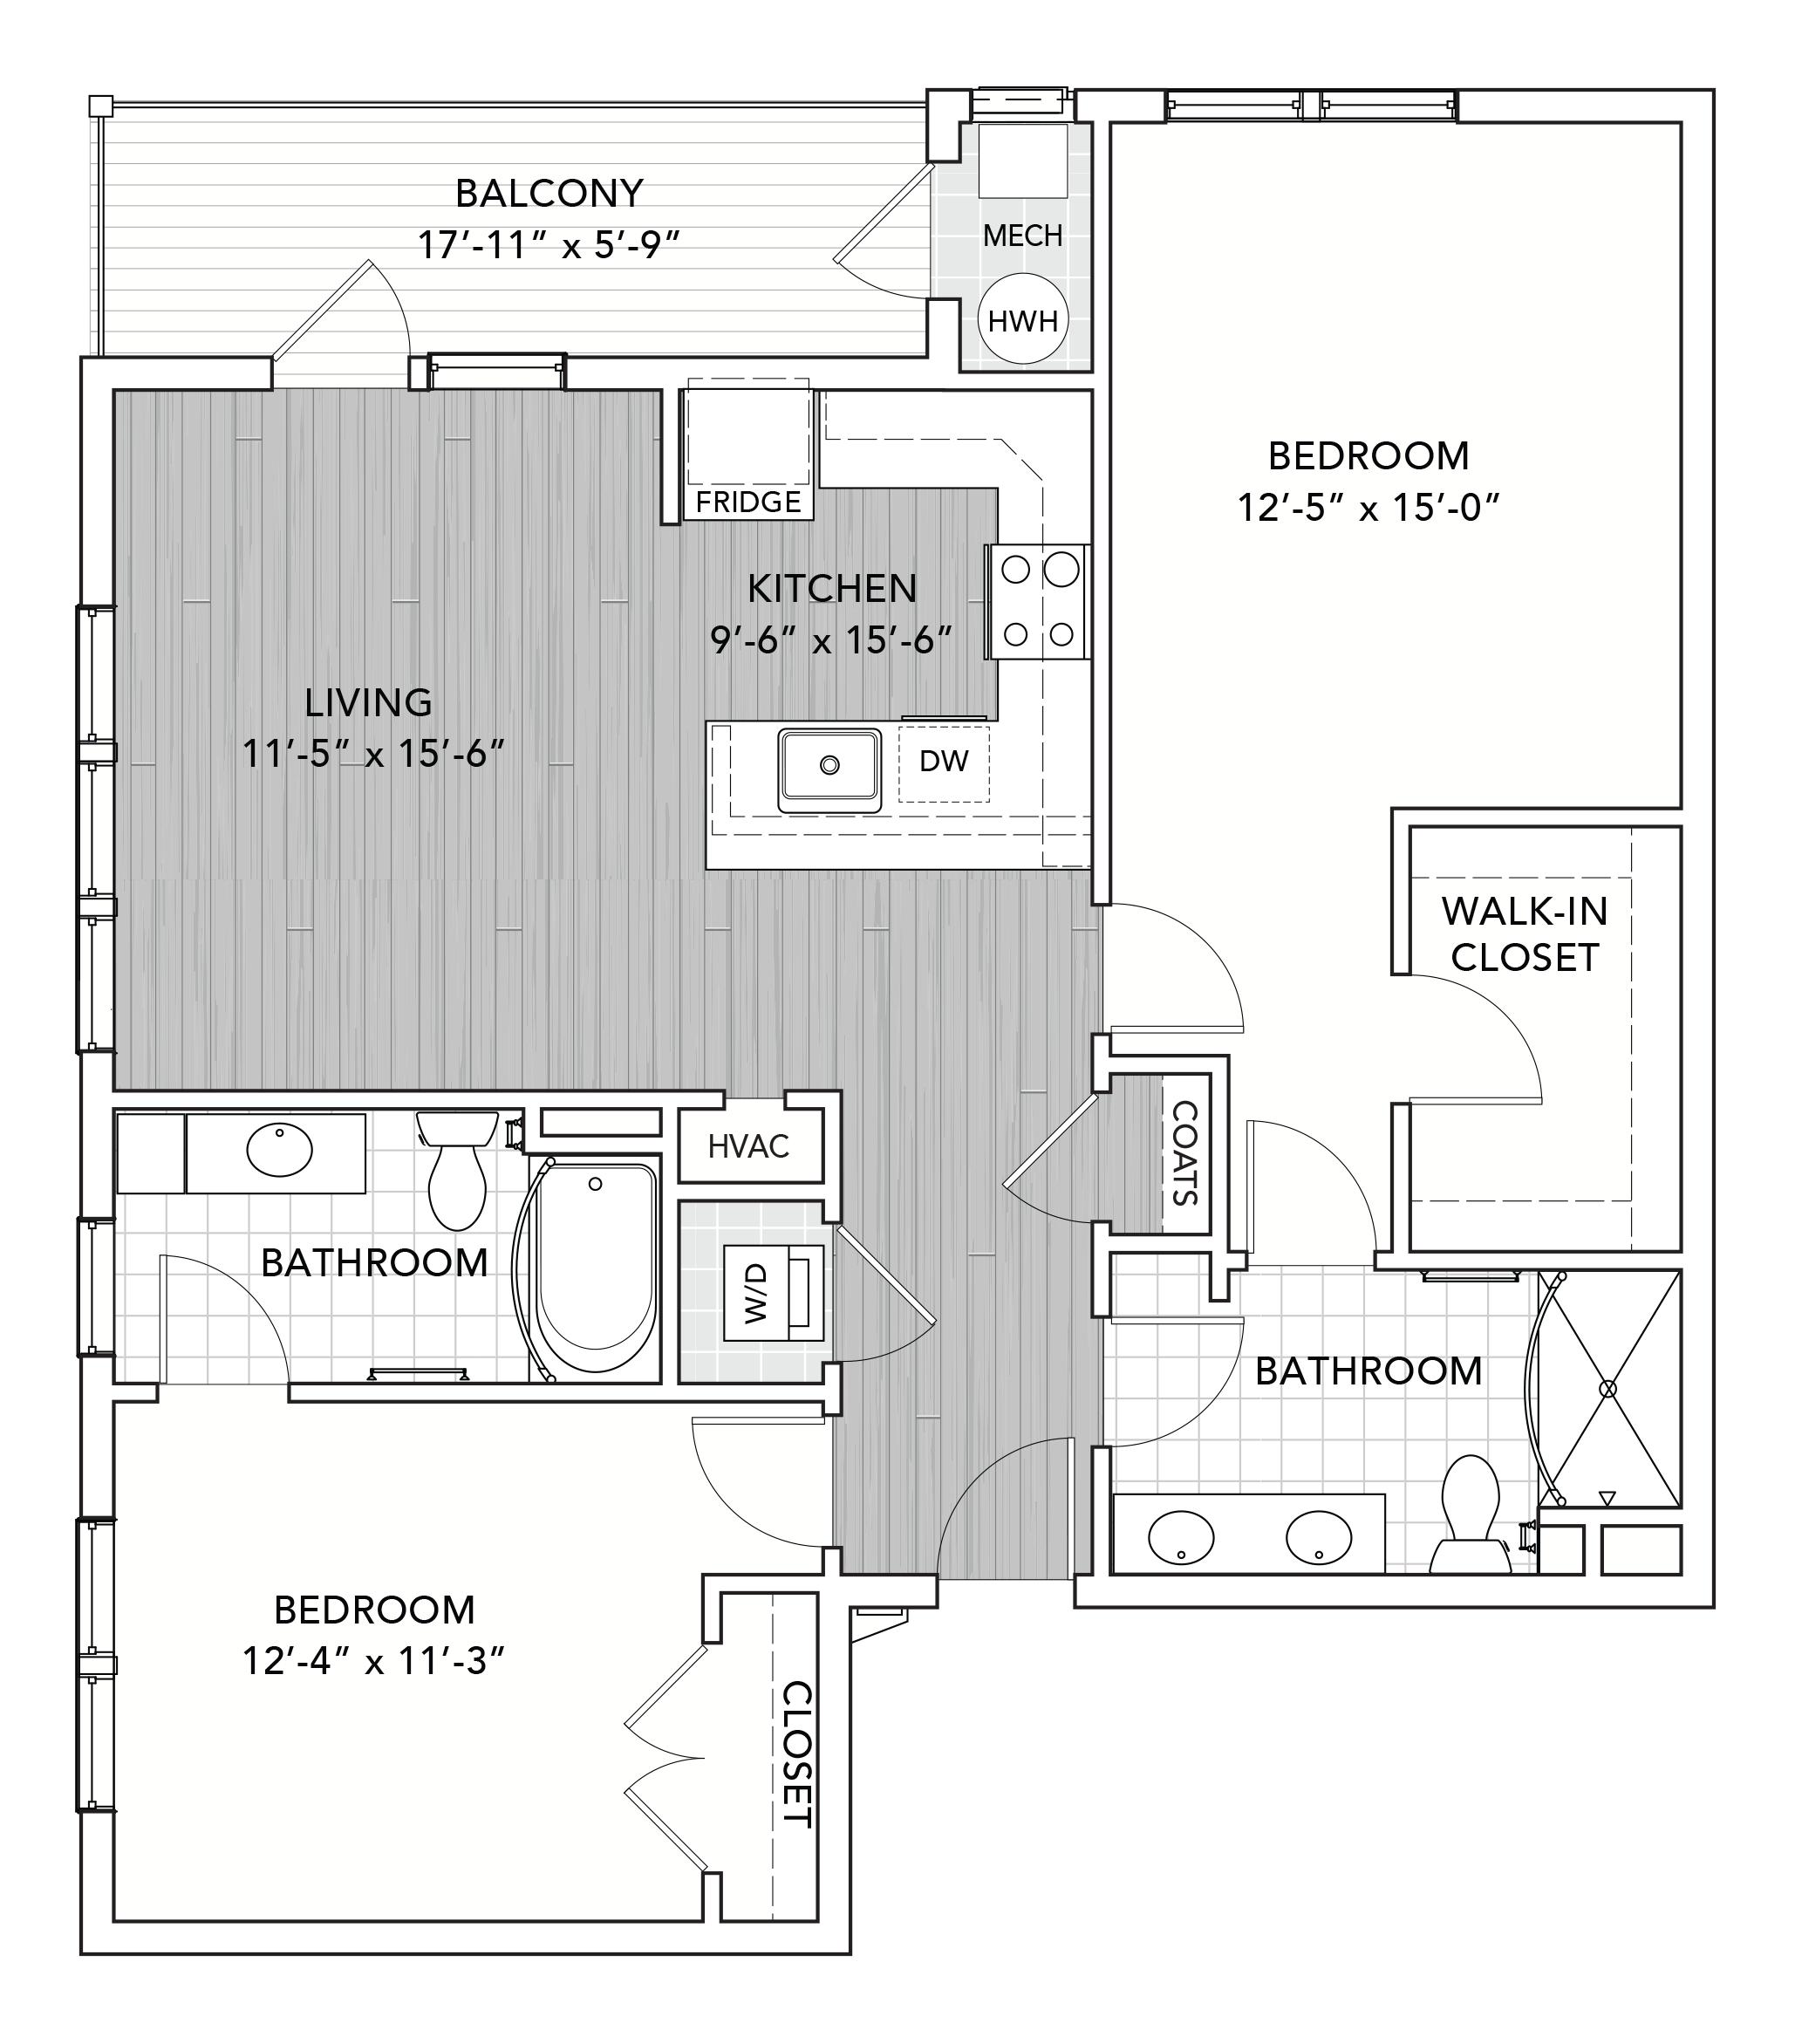 P0655013 parksquare b2 1168 2 floorplan